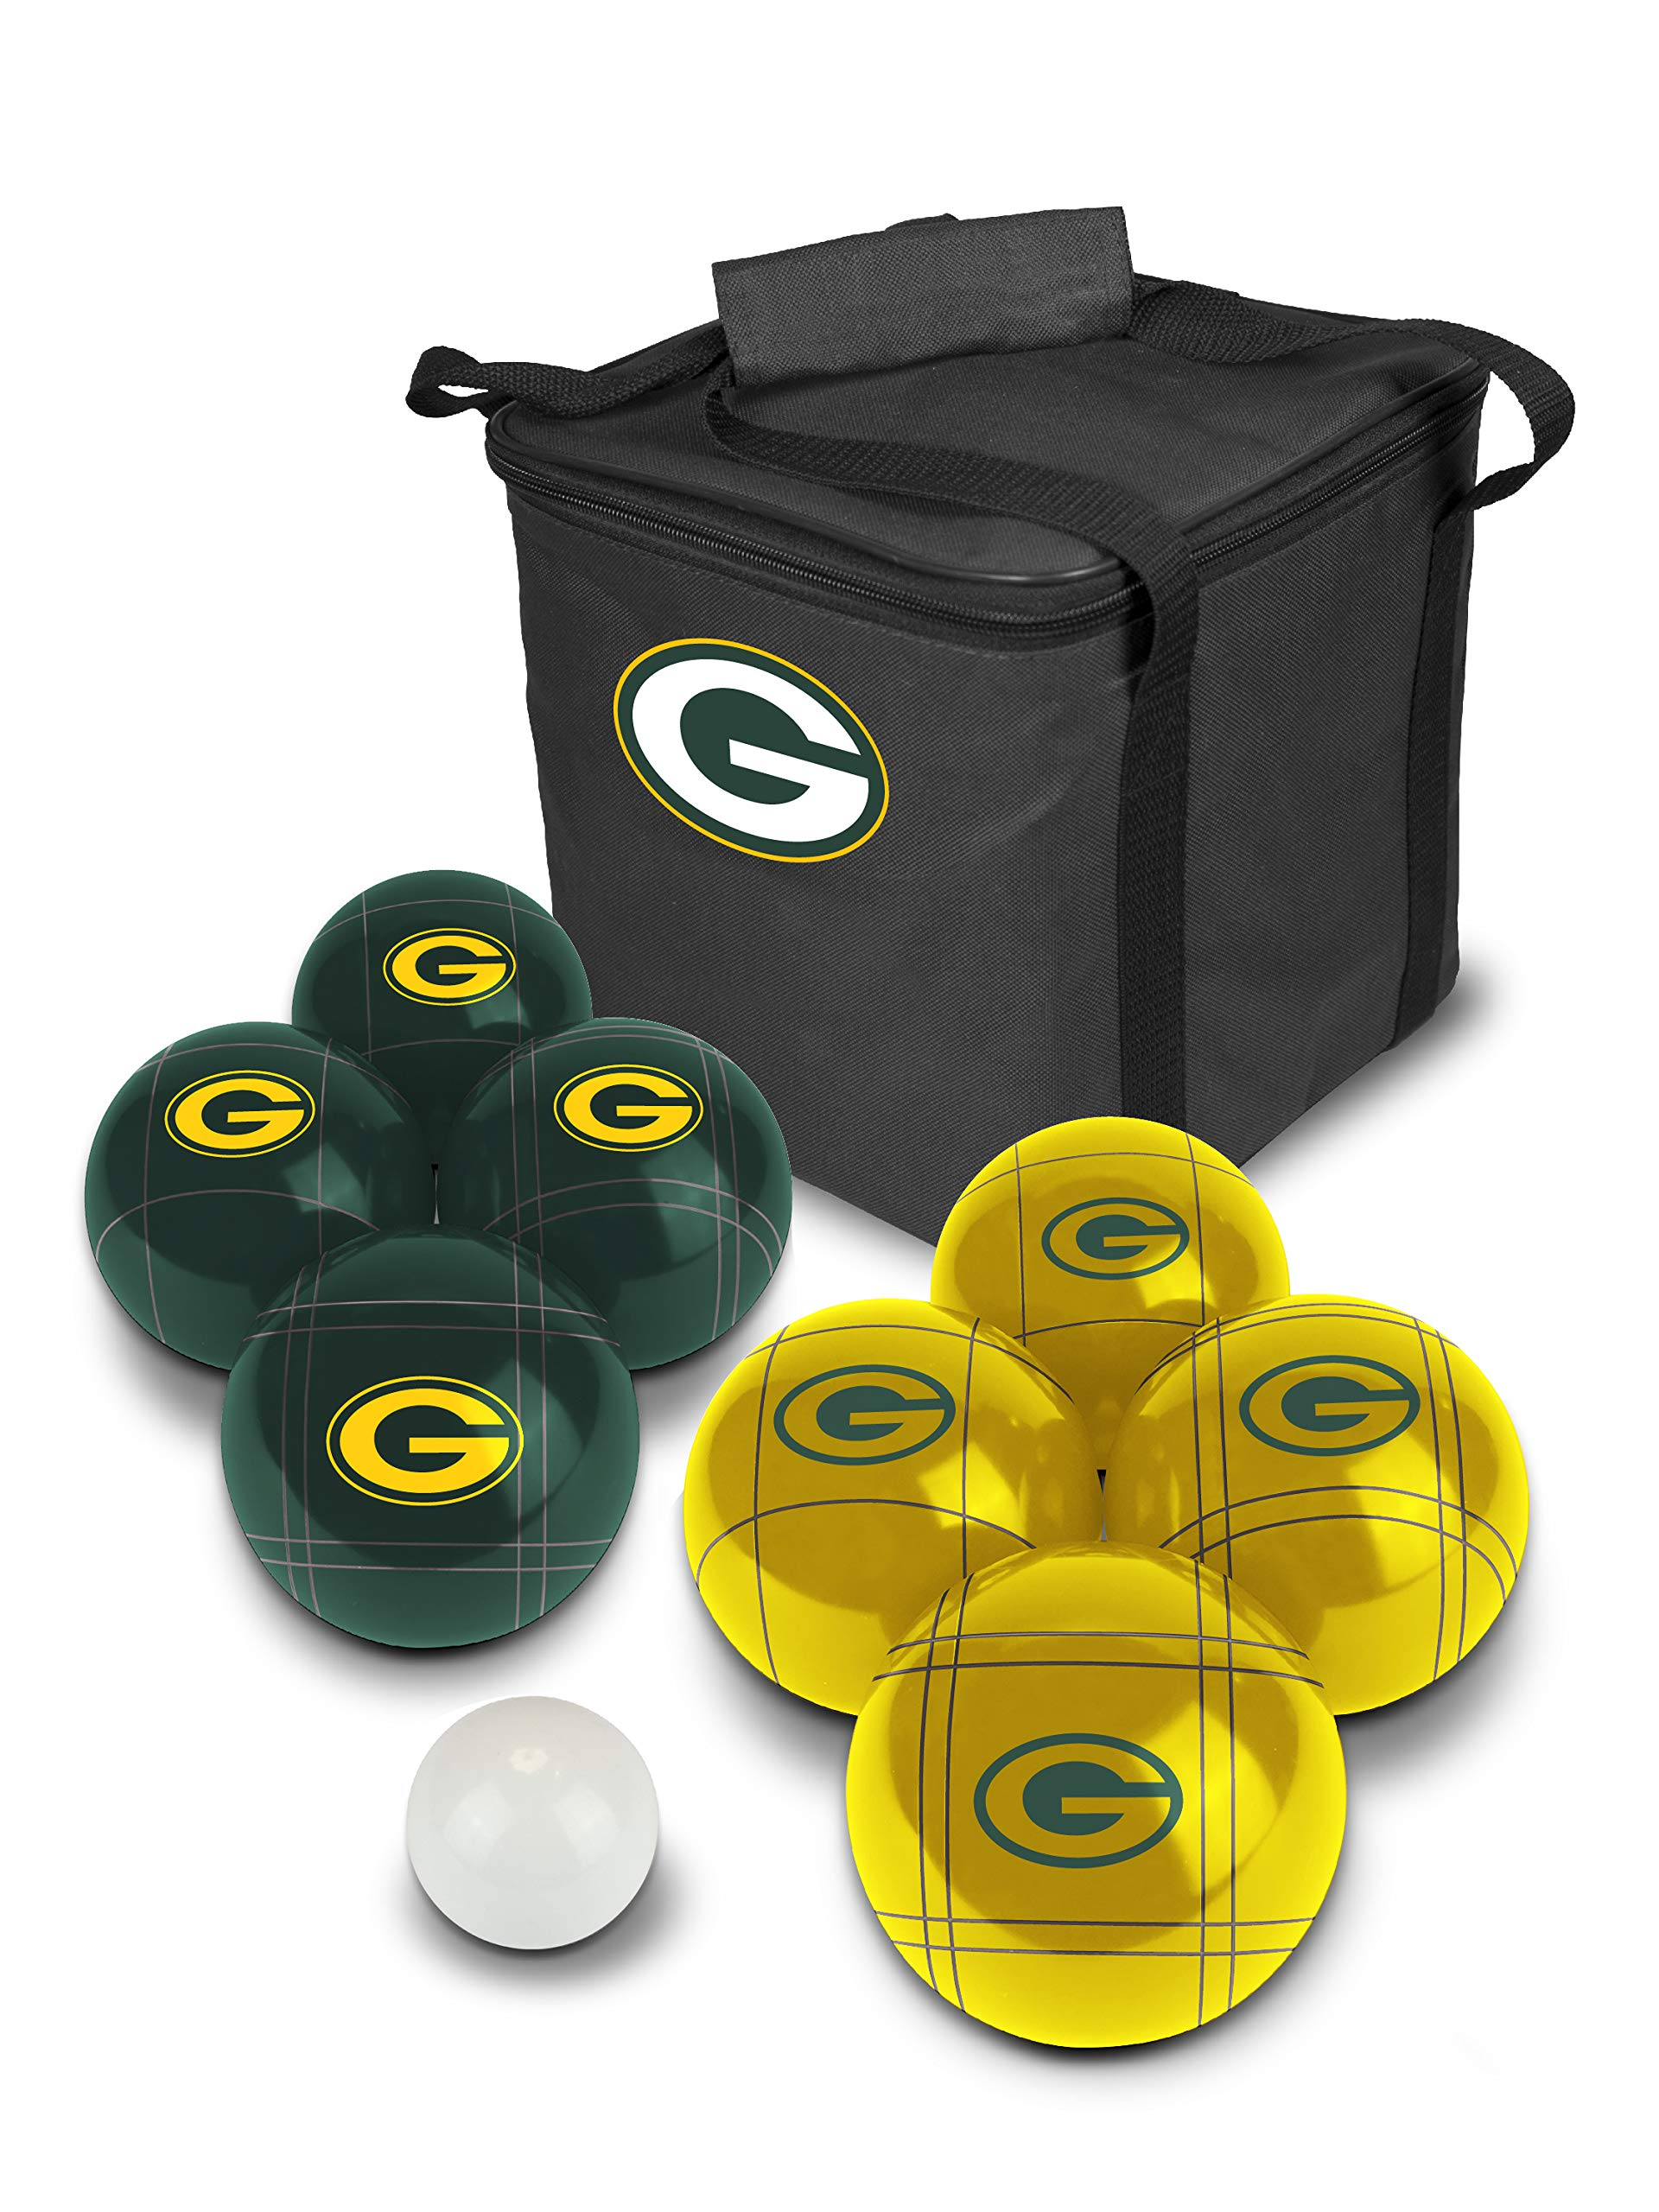 PROLINE NFL Green Bay Packers Bocce Ball Set by PROLINE